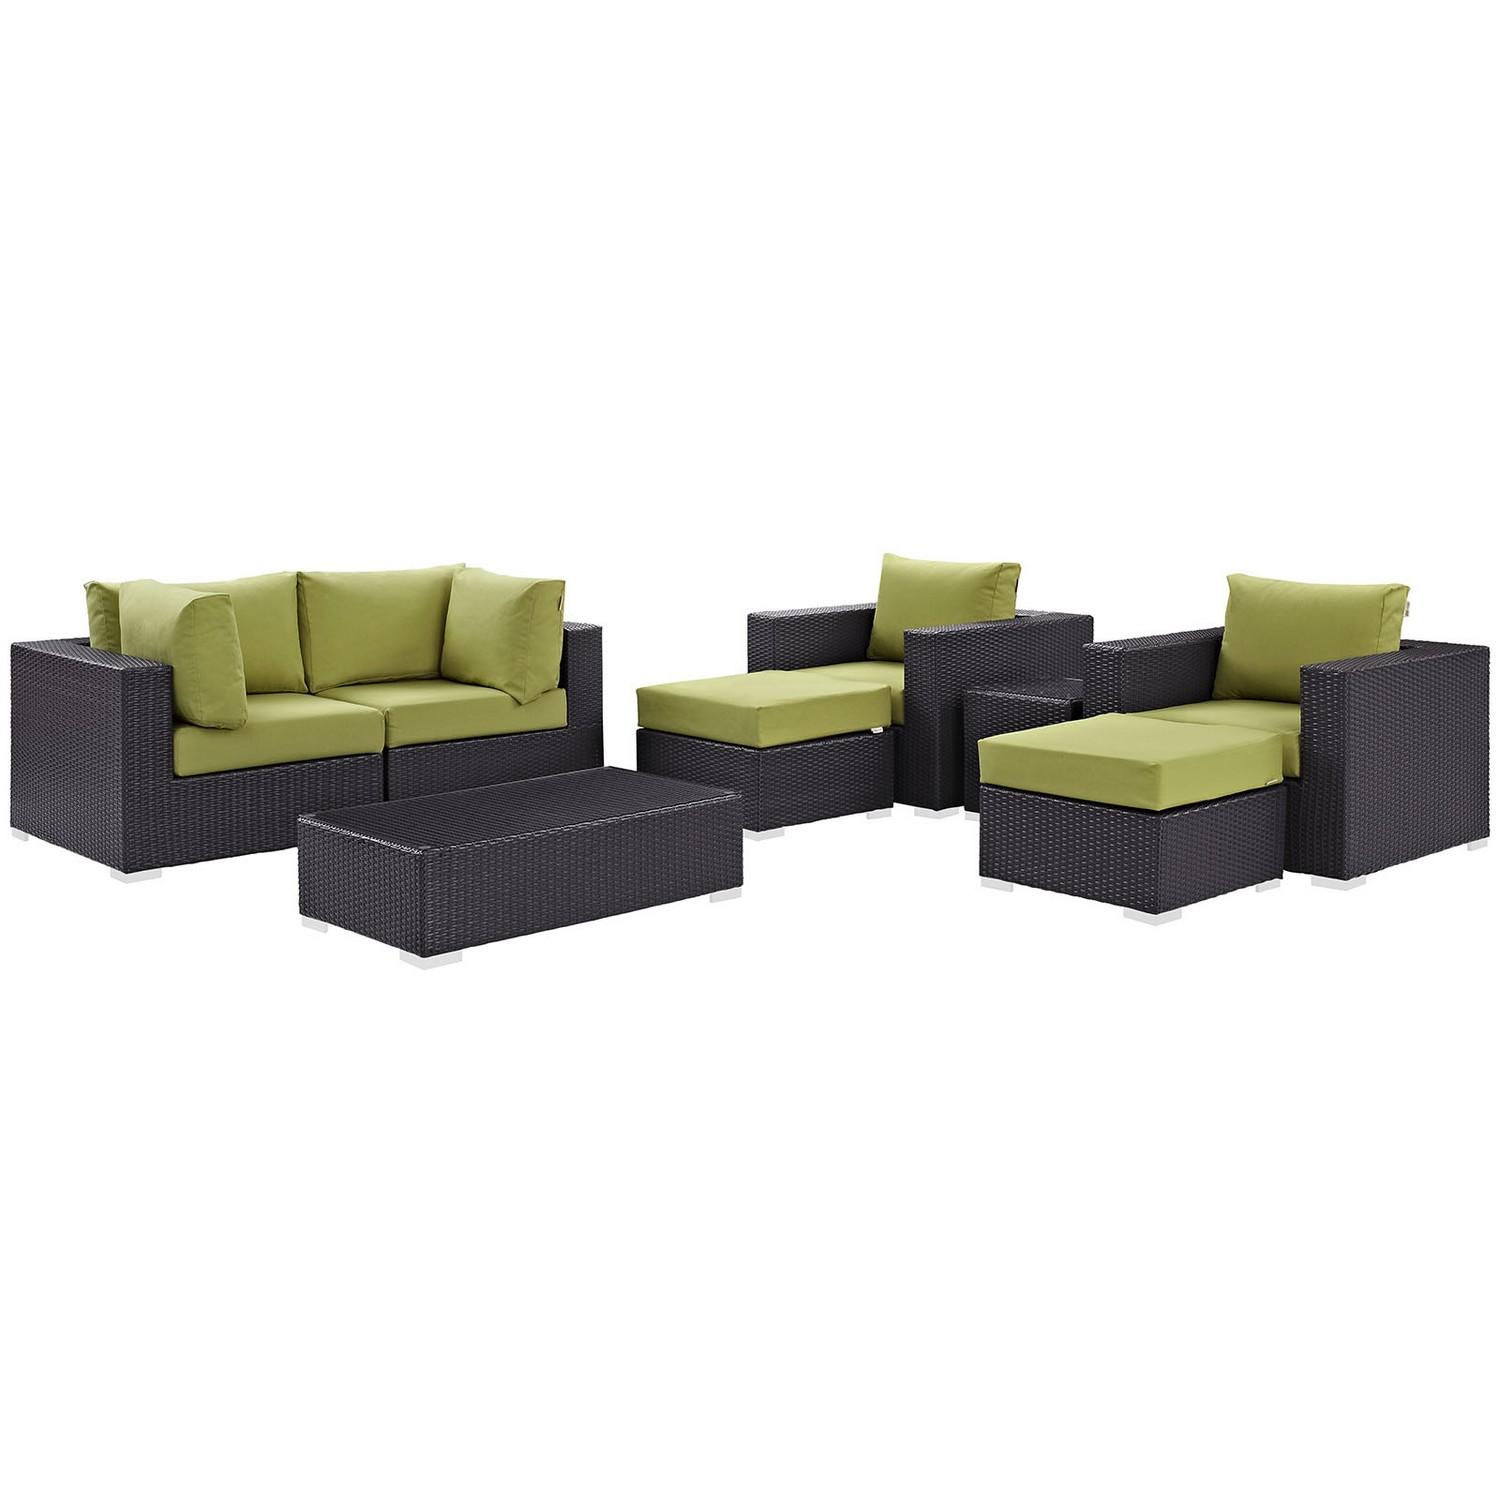 Modway Convene 8 Piece Outdoor Patio Sectional Set - Espresso Peridot